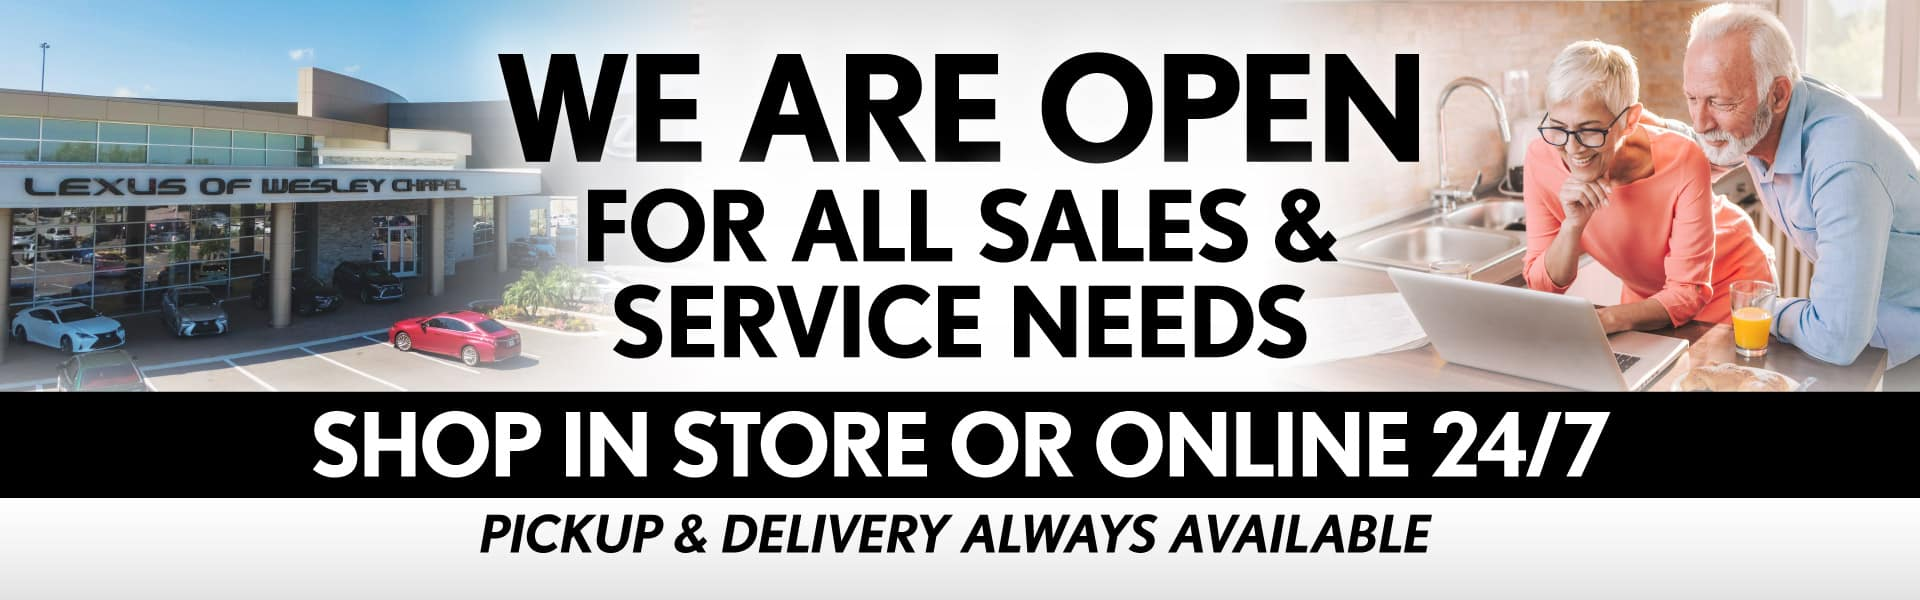 We are open for all sales and service needs. Shop in store or online 24/7.